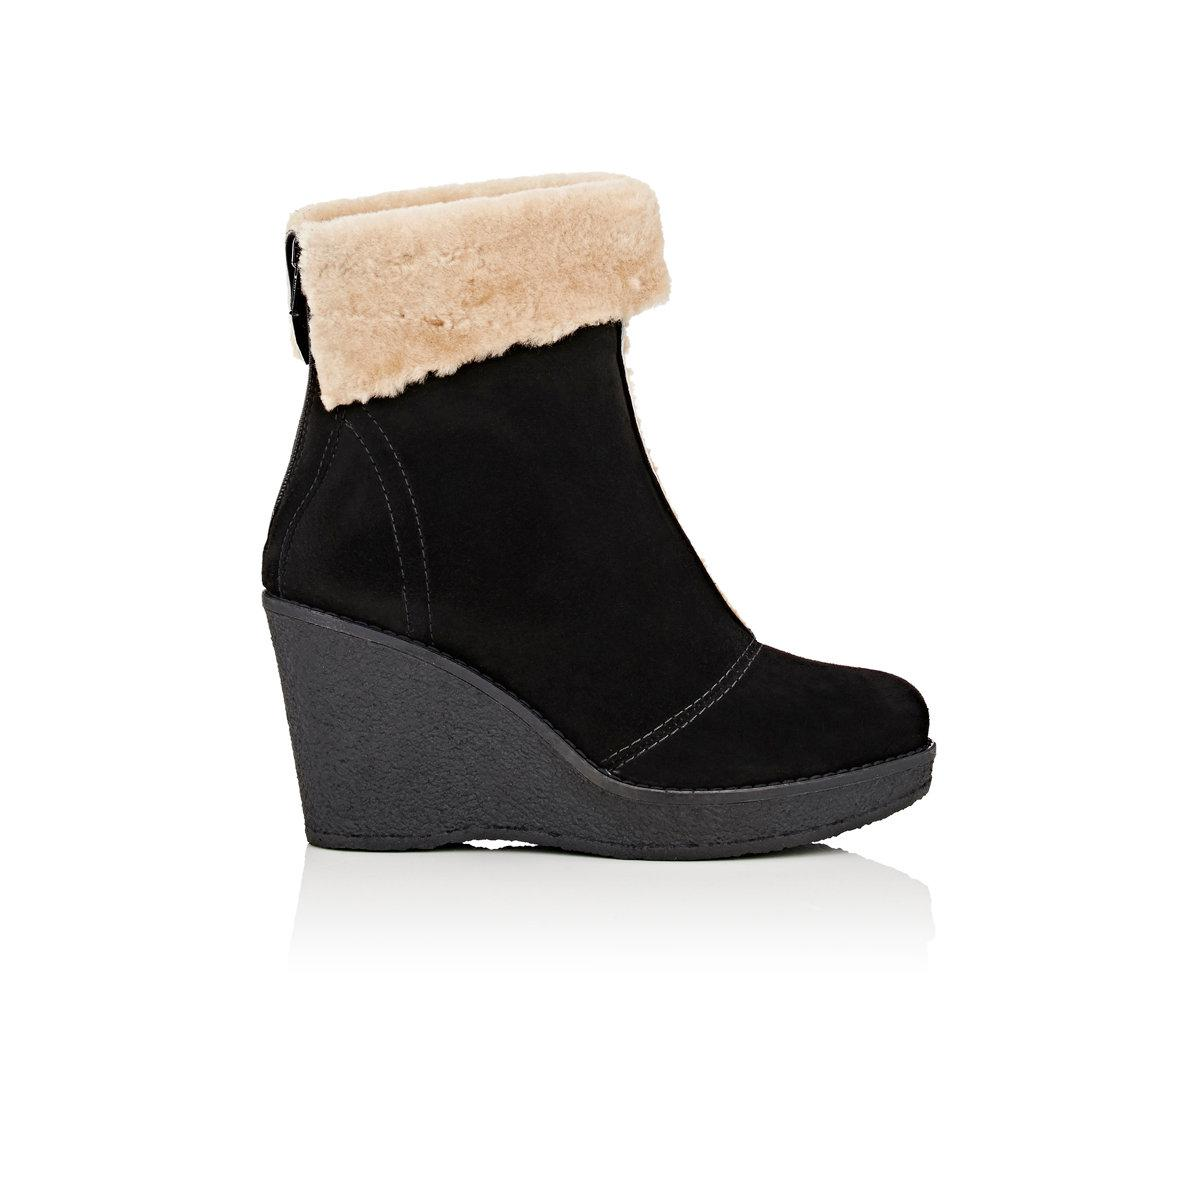 free shipping discount cost cheap price Mr & Mrs Italy Suede & Shearling Wedge Ankle Boots fake for sale sale fashionable under $60 sale online INDz3Ijk